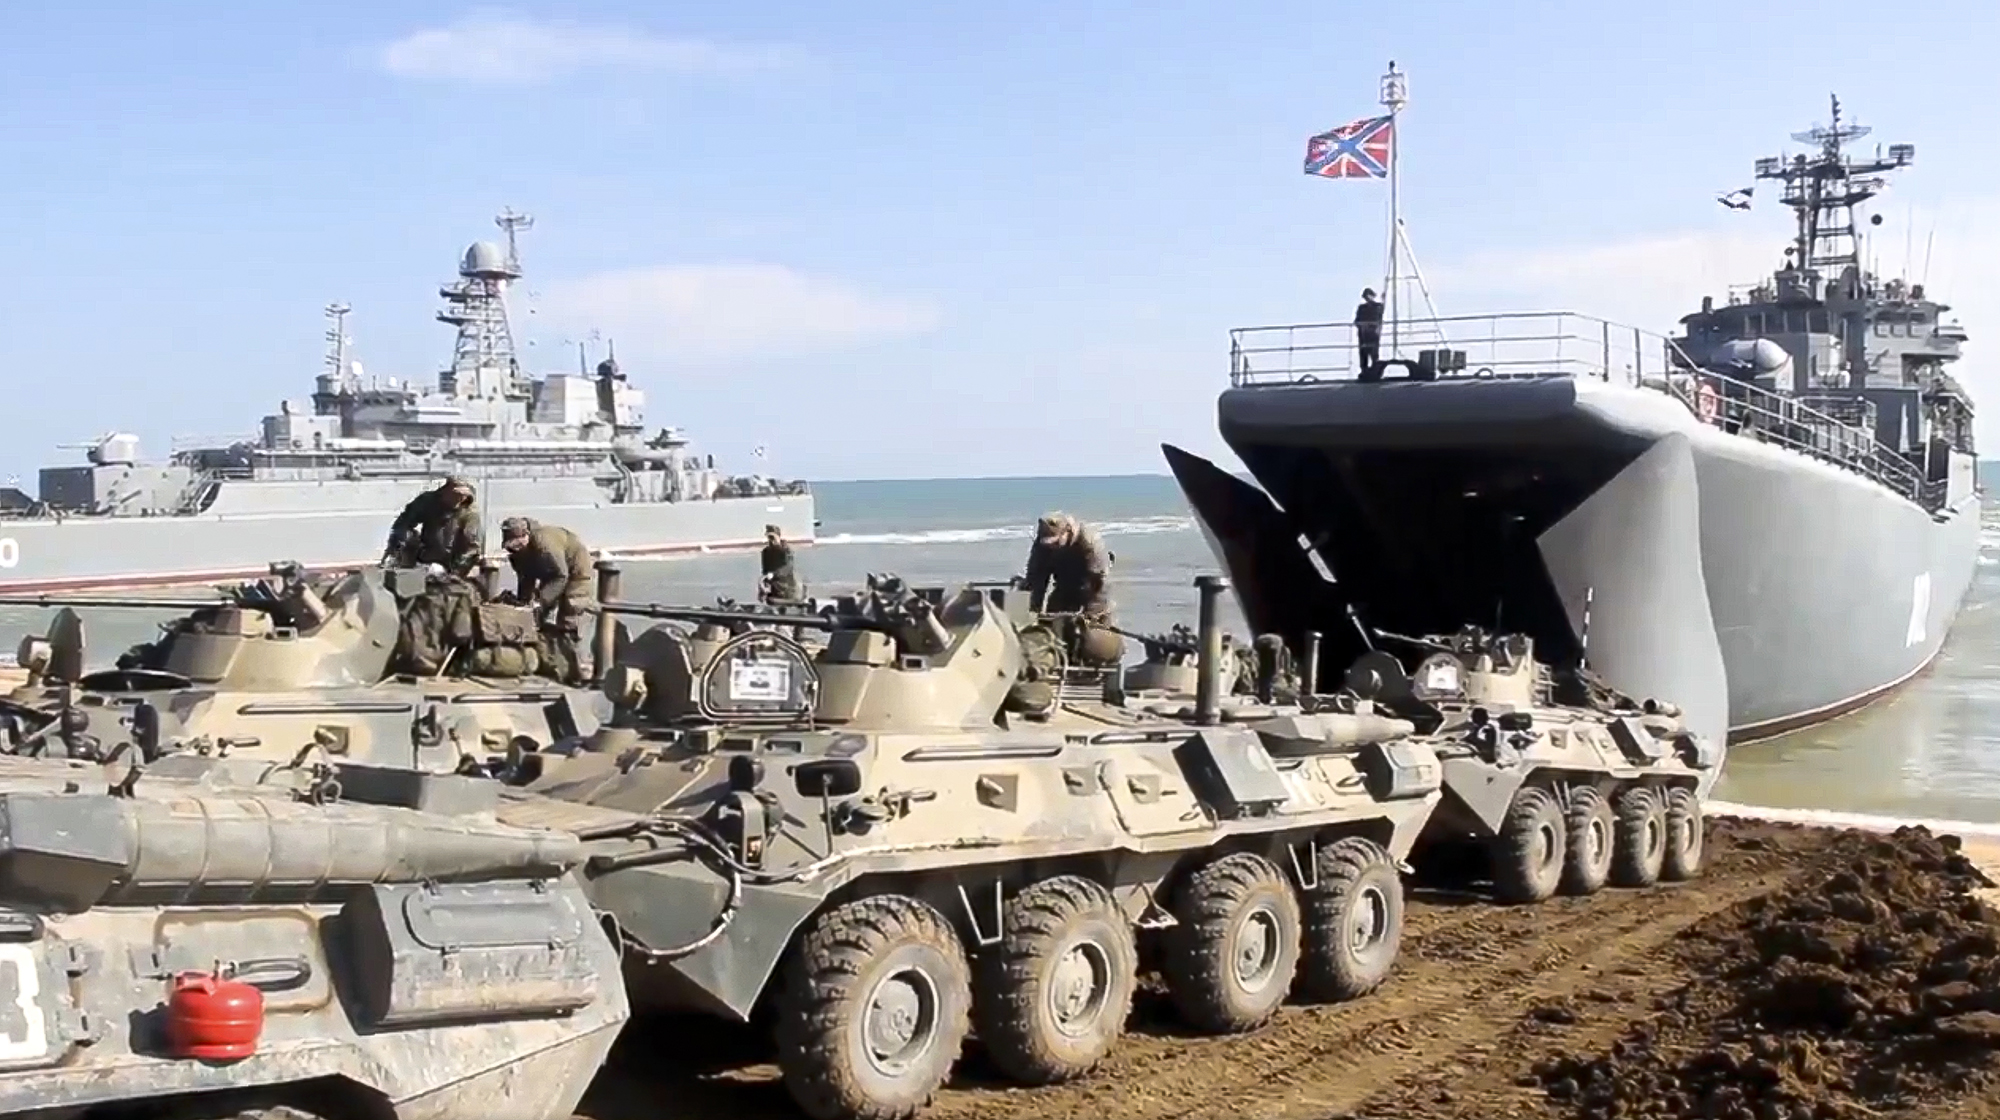 Russian military armored vehicles roll into landing vessels after drills in Crimea on April 23, 2021. (Russian Defense Ministry Press Service via AP)